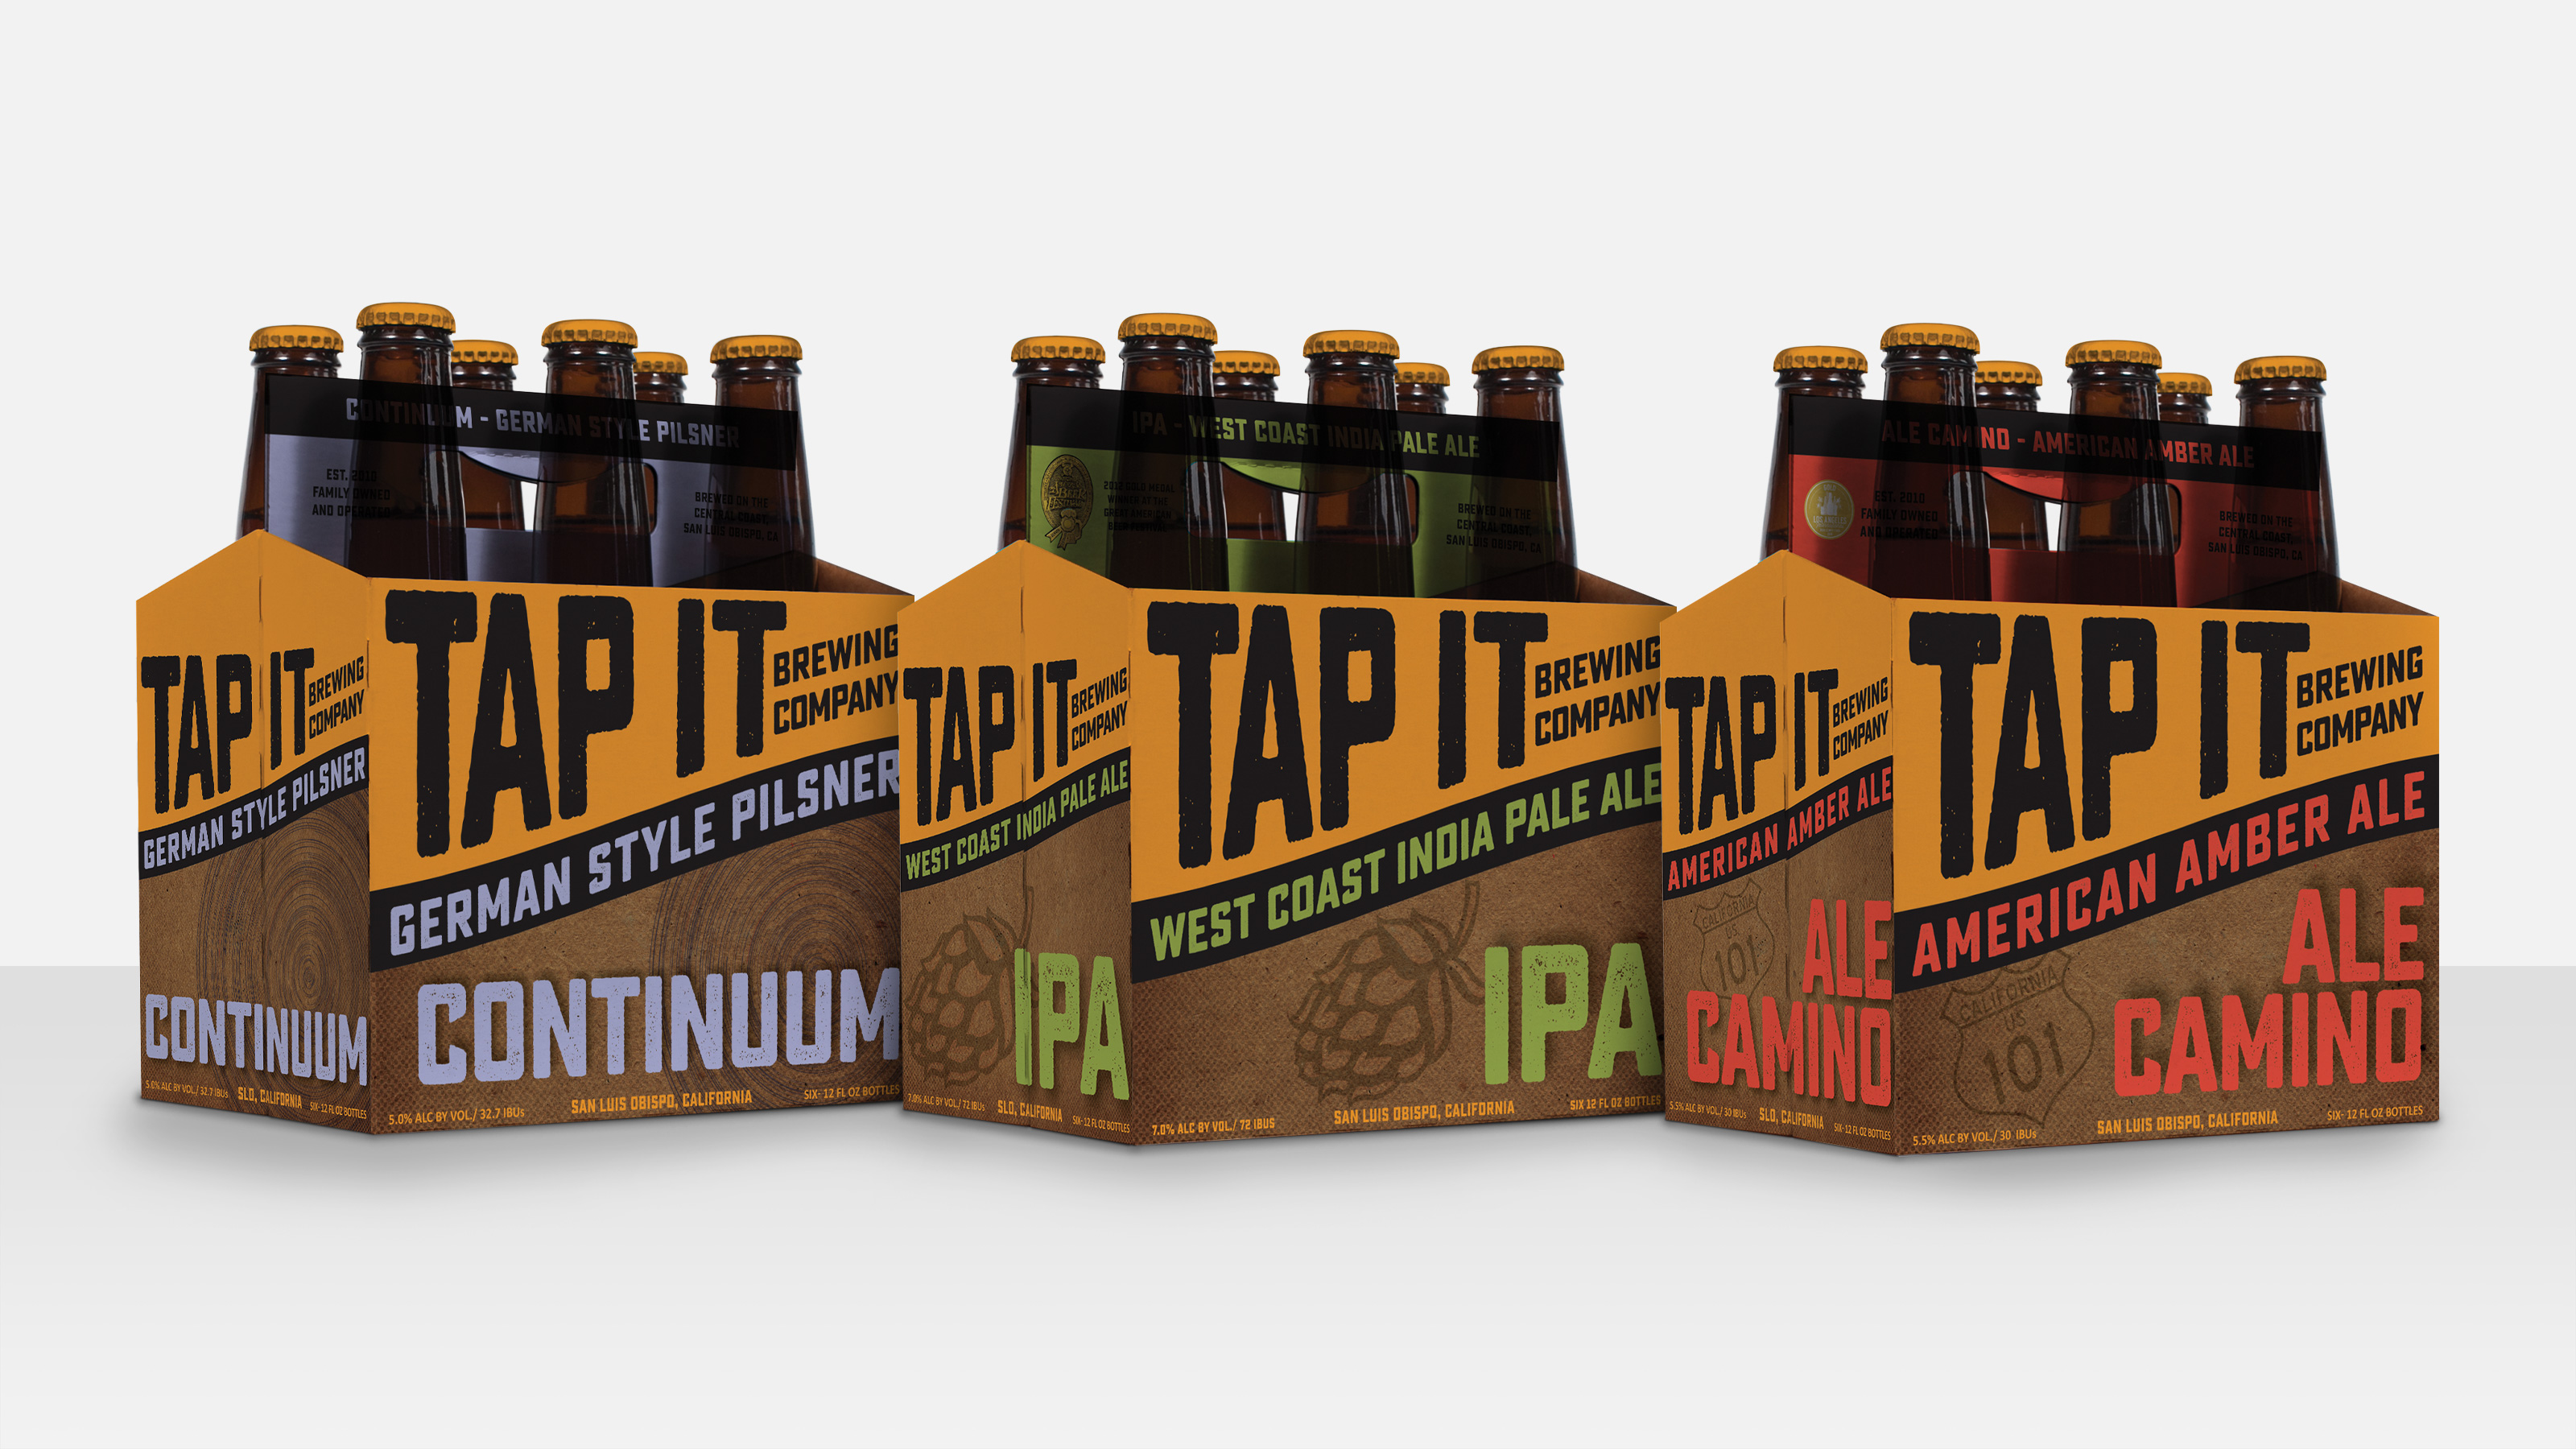 three six packs of Tap It beer packaging group shot